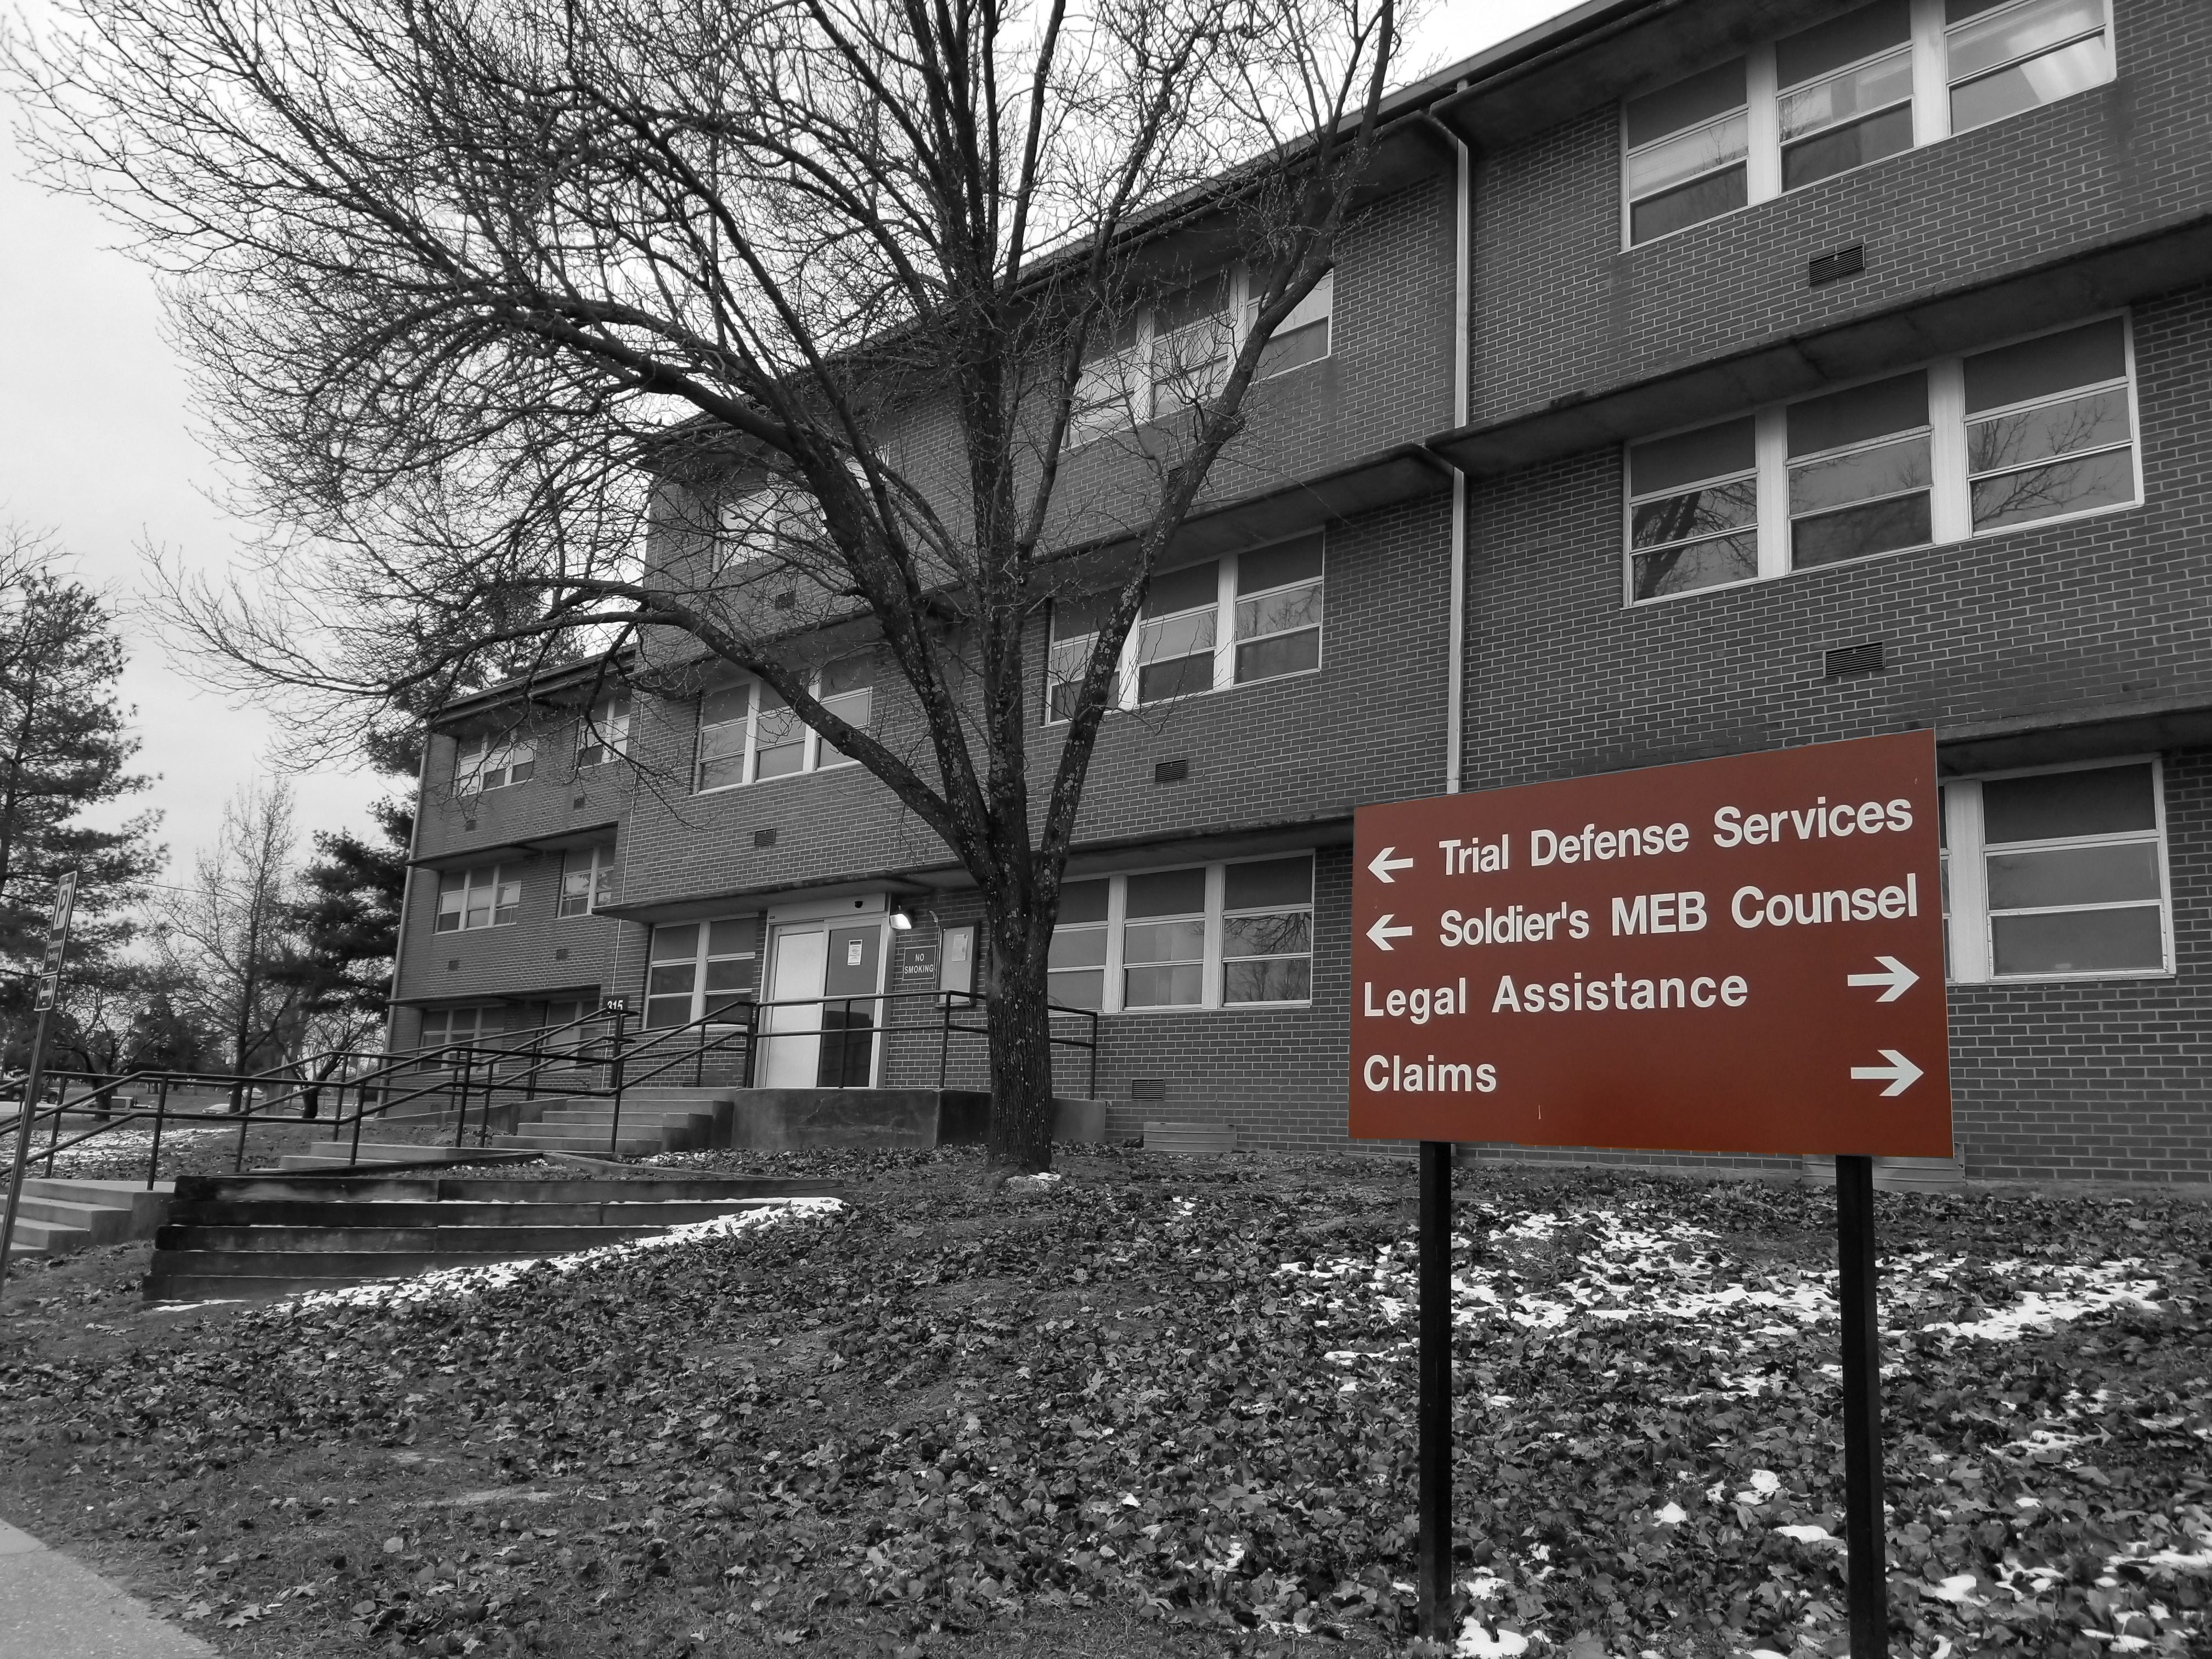 Trial Defense Services Office located at Fort Leonard Wood Missouri, First Floor, photo by Will M. Helixon (2017).